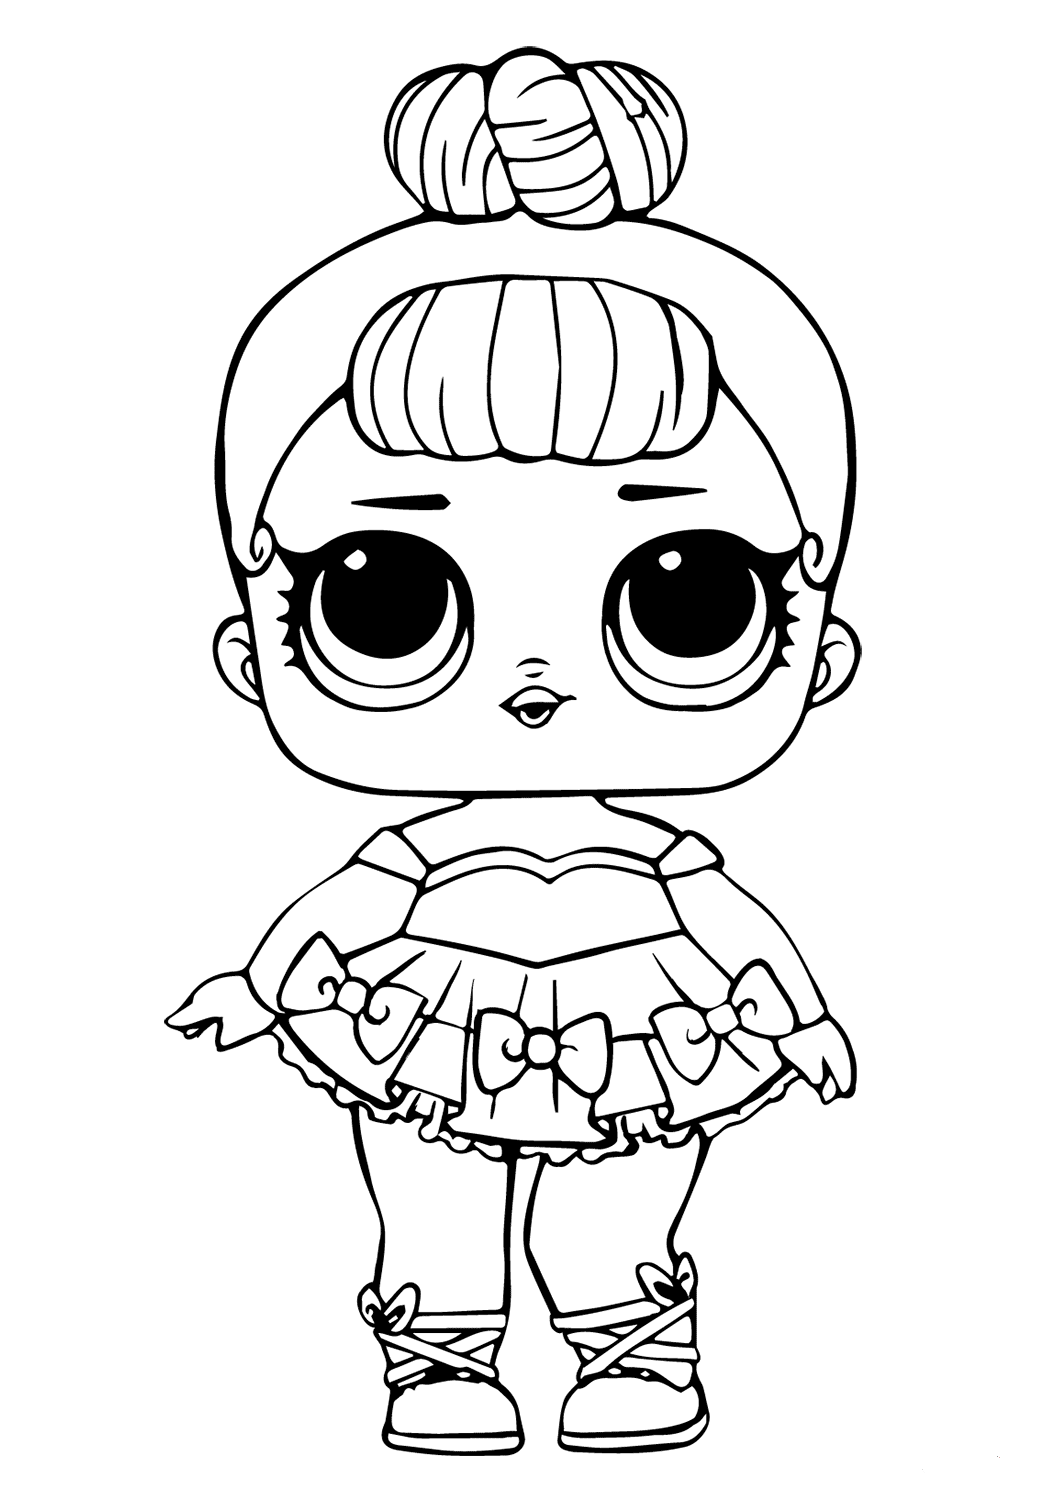 dolls colouring pages lol surprise dolls coloring pages print a new dolls pages colouring